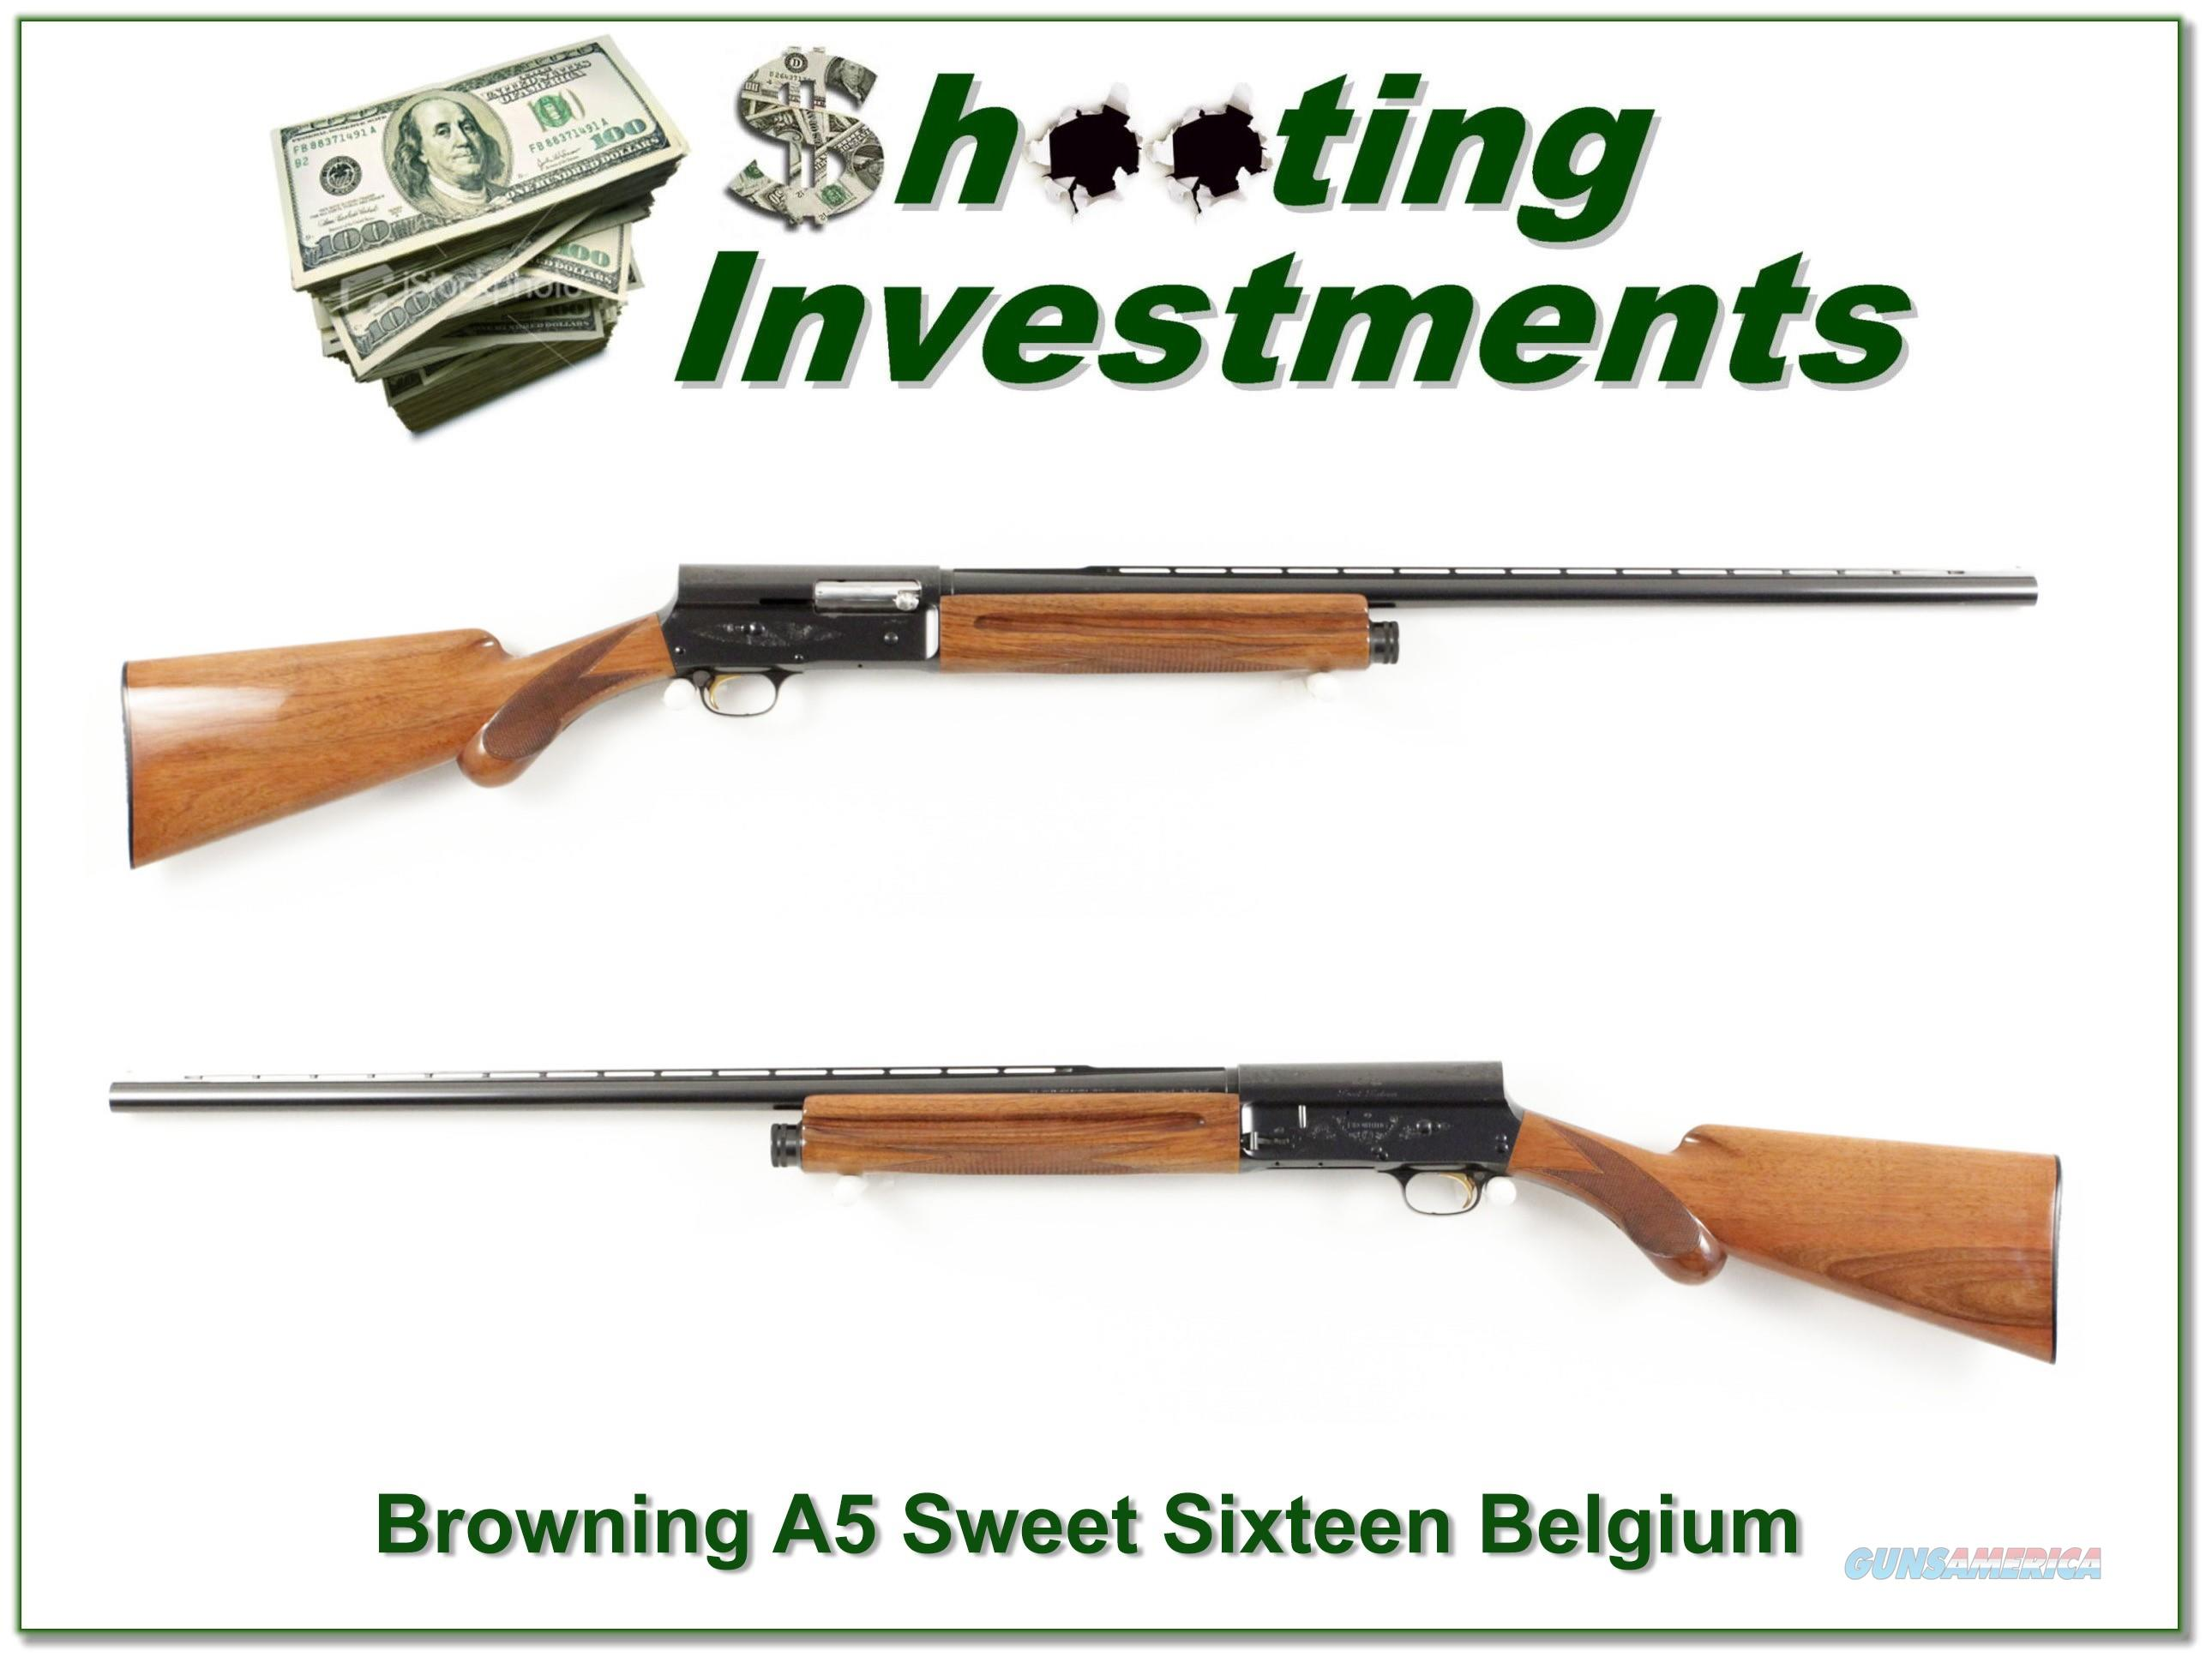 Browning A5 Sweet Sixteen 60 Belgium VR  Guns > Shotguns > Browning Shotguns > Autoloaders > Hunting